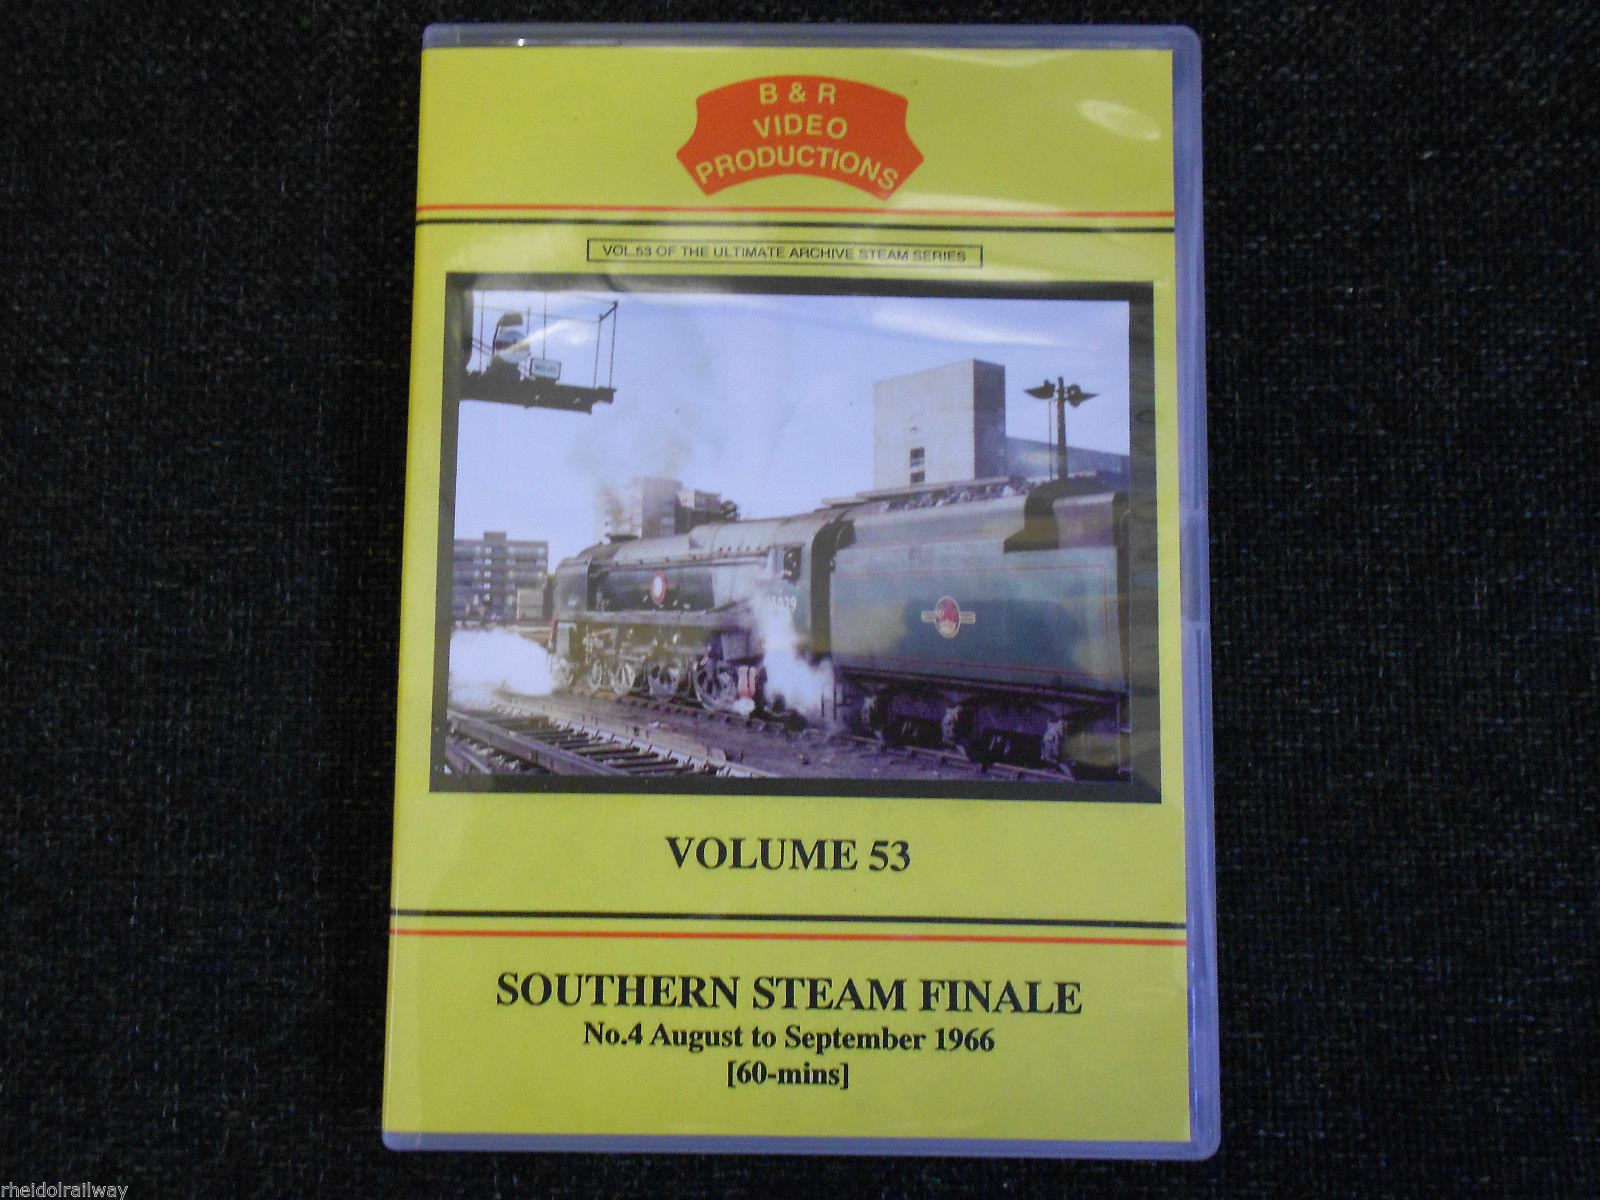 Penistone, Isle of Wight, Swanage, Southern Steam Finale No. 4 B&R Vol 53 DVD - The Vale of Rheidol Railway